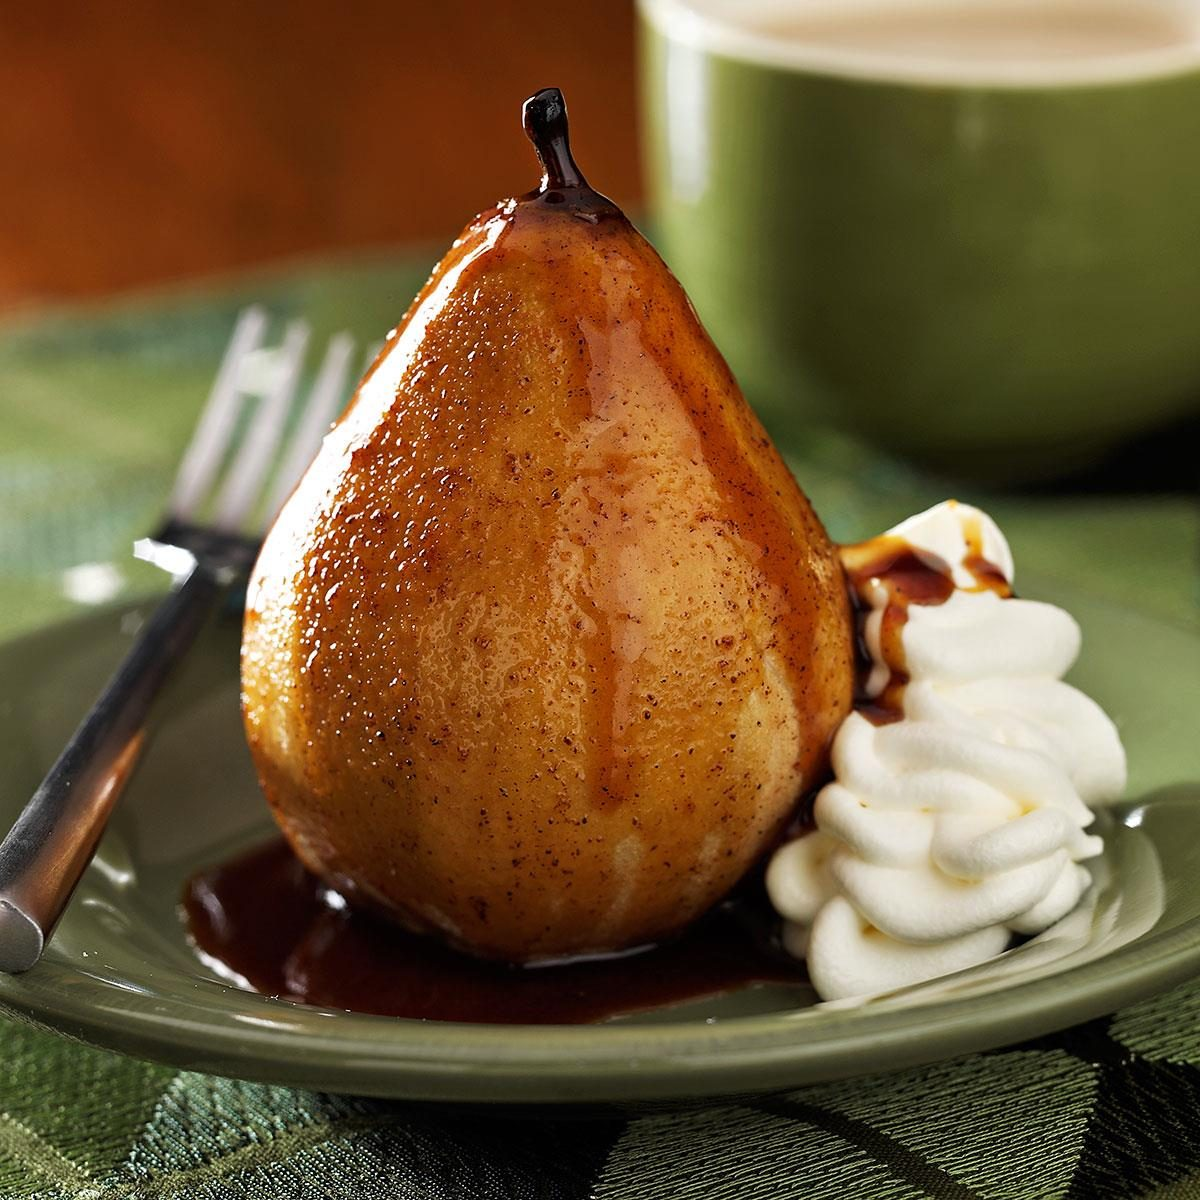 Home pears from pears: a few simple recipes